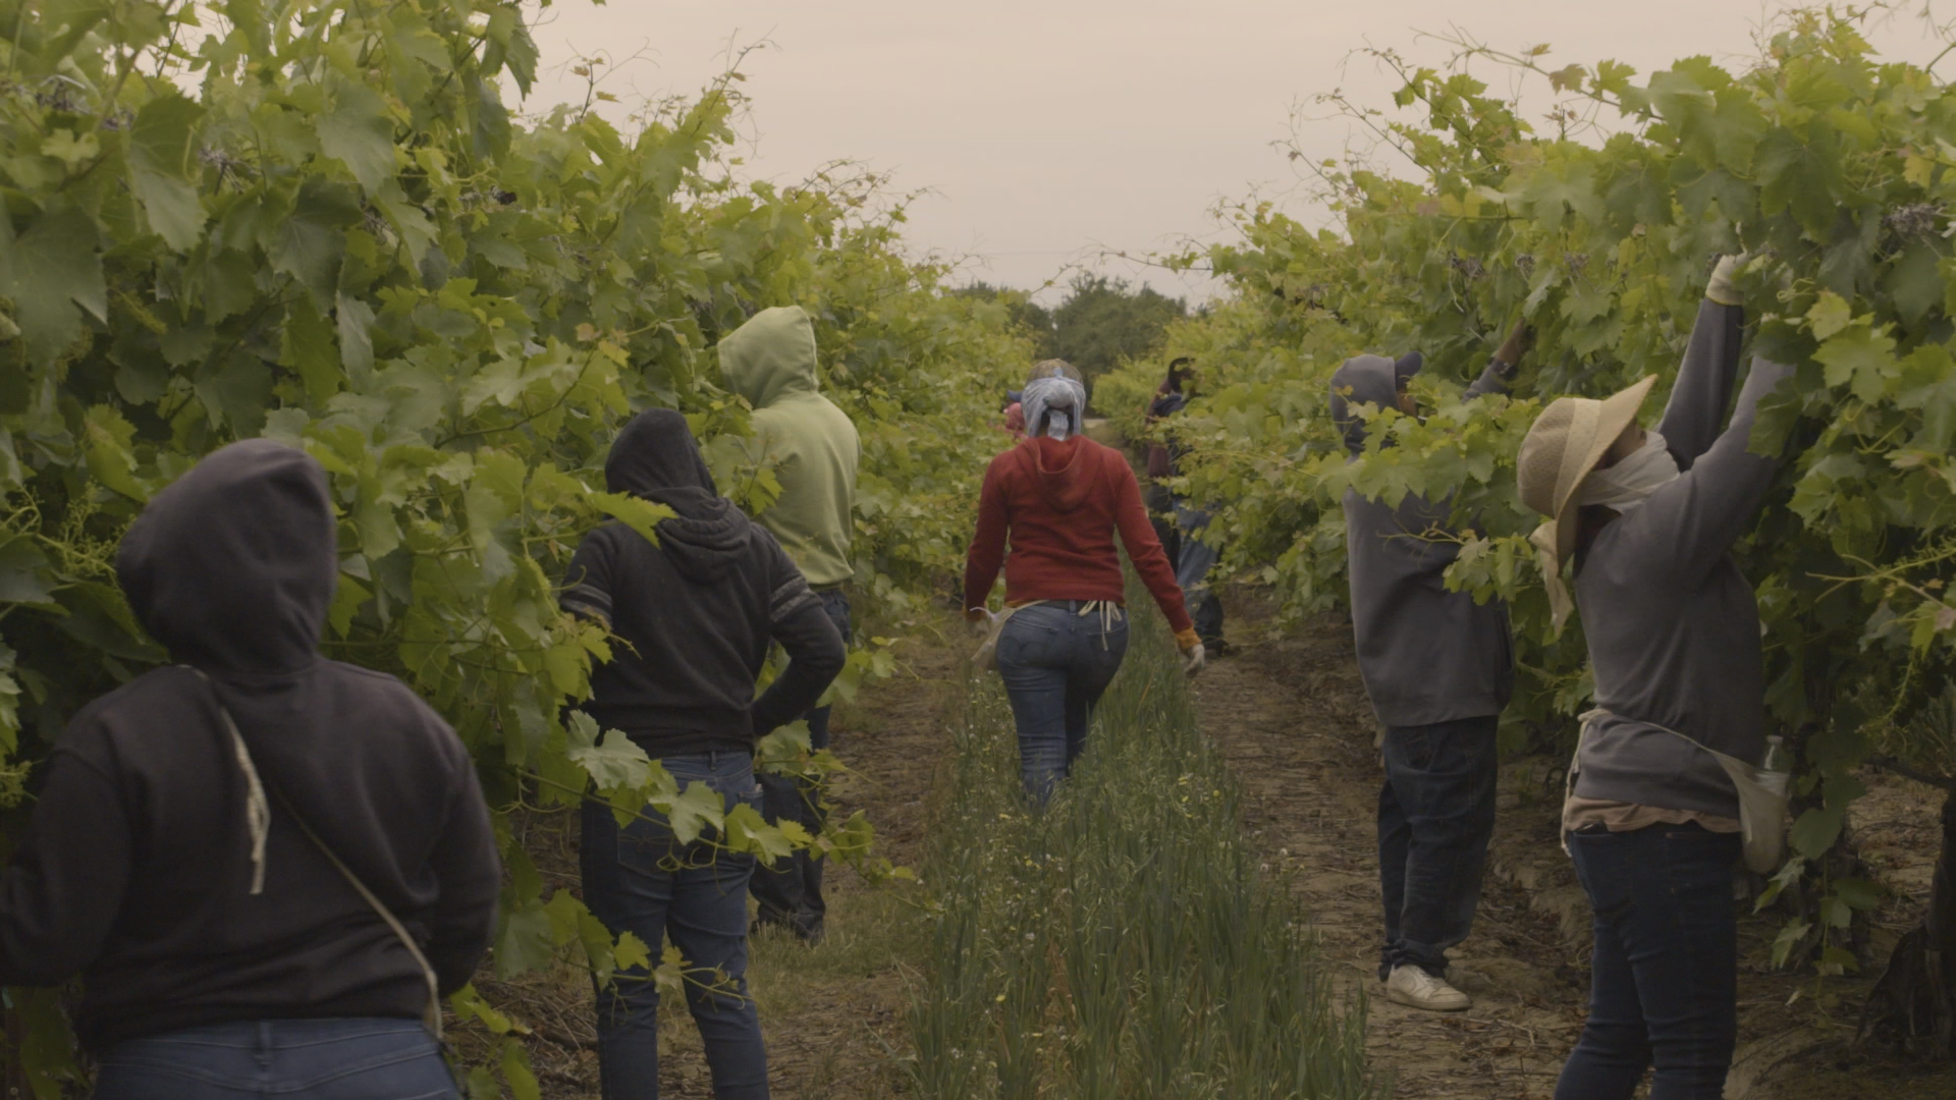 (1) Workers in Grape Field.jpg